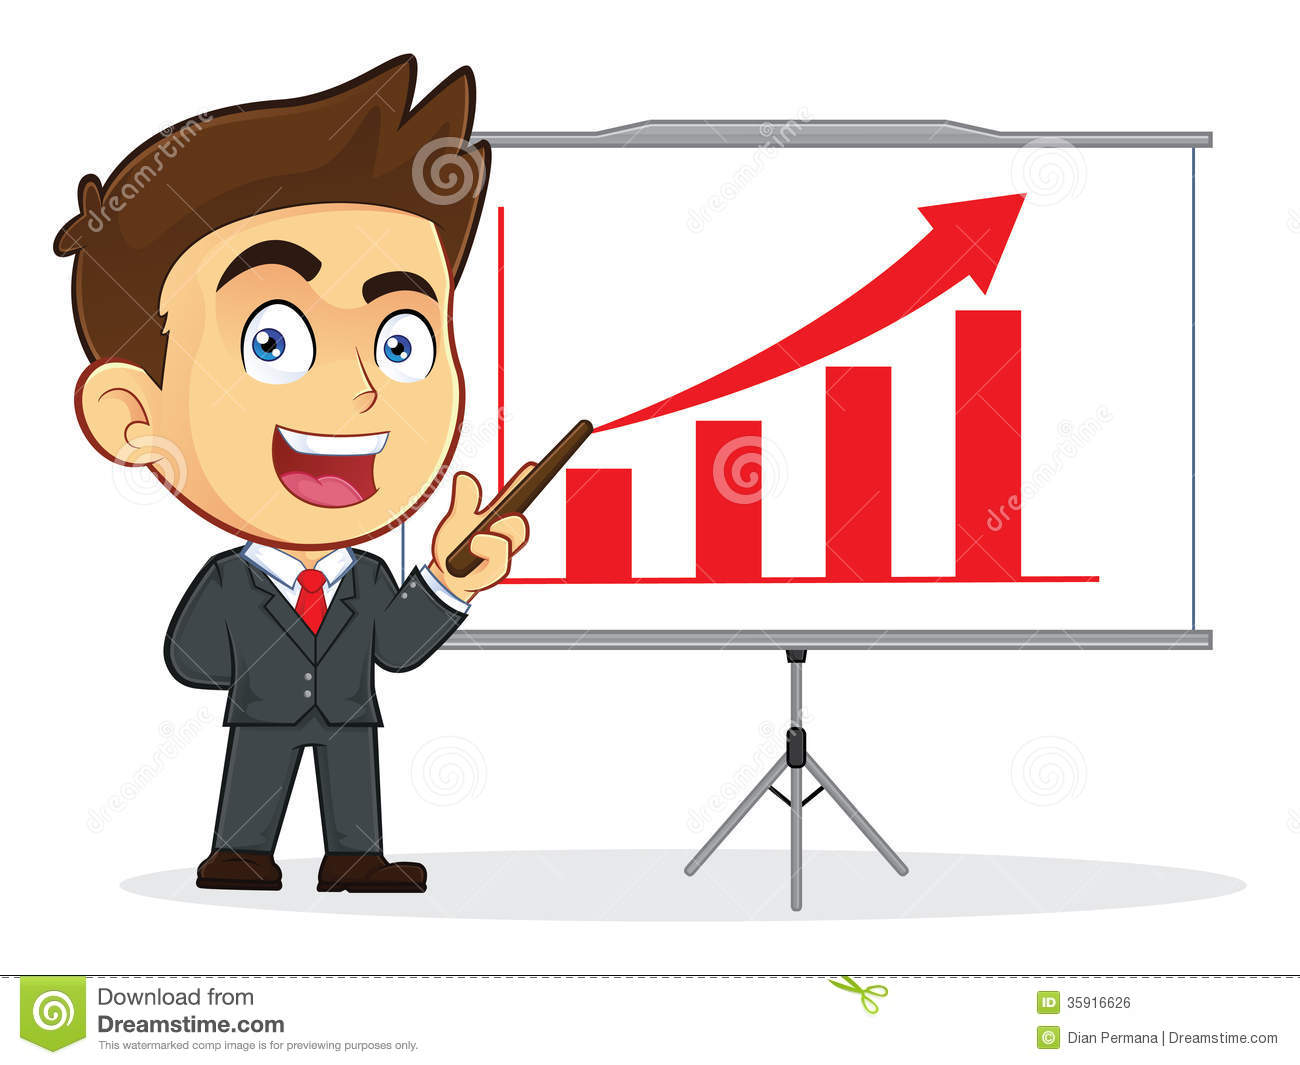 Clipart for business presentations image royalty free stock 78+ Free Business Clipart For Presentations | ClipartLook image royalty free stock